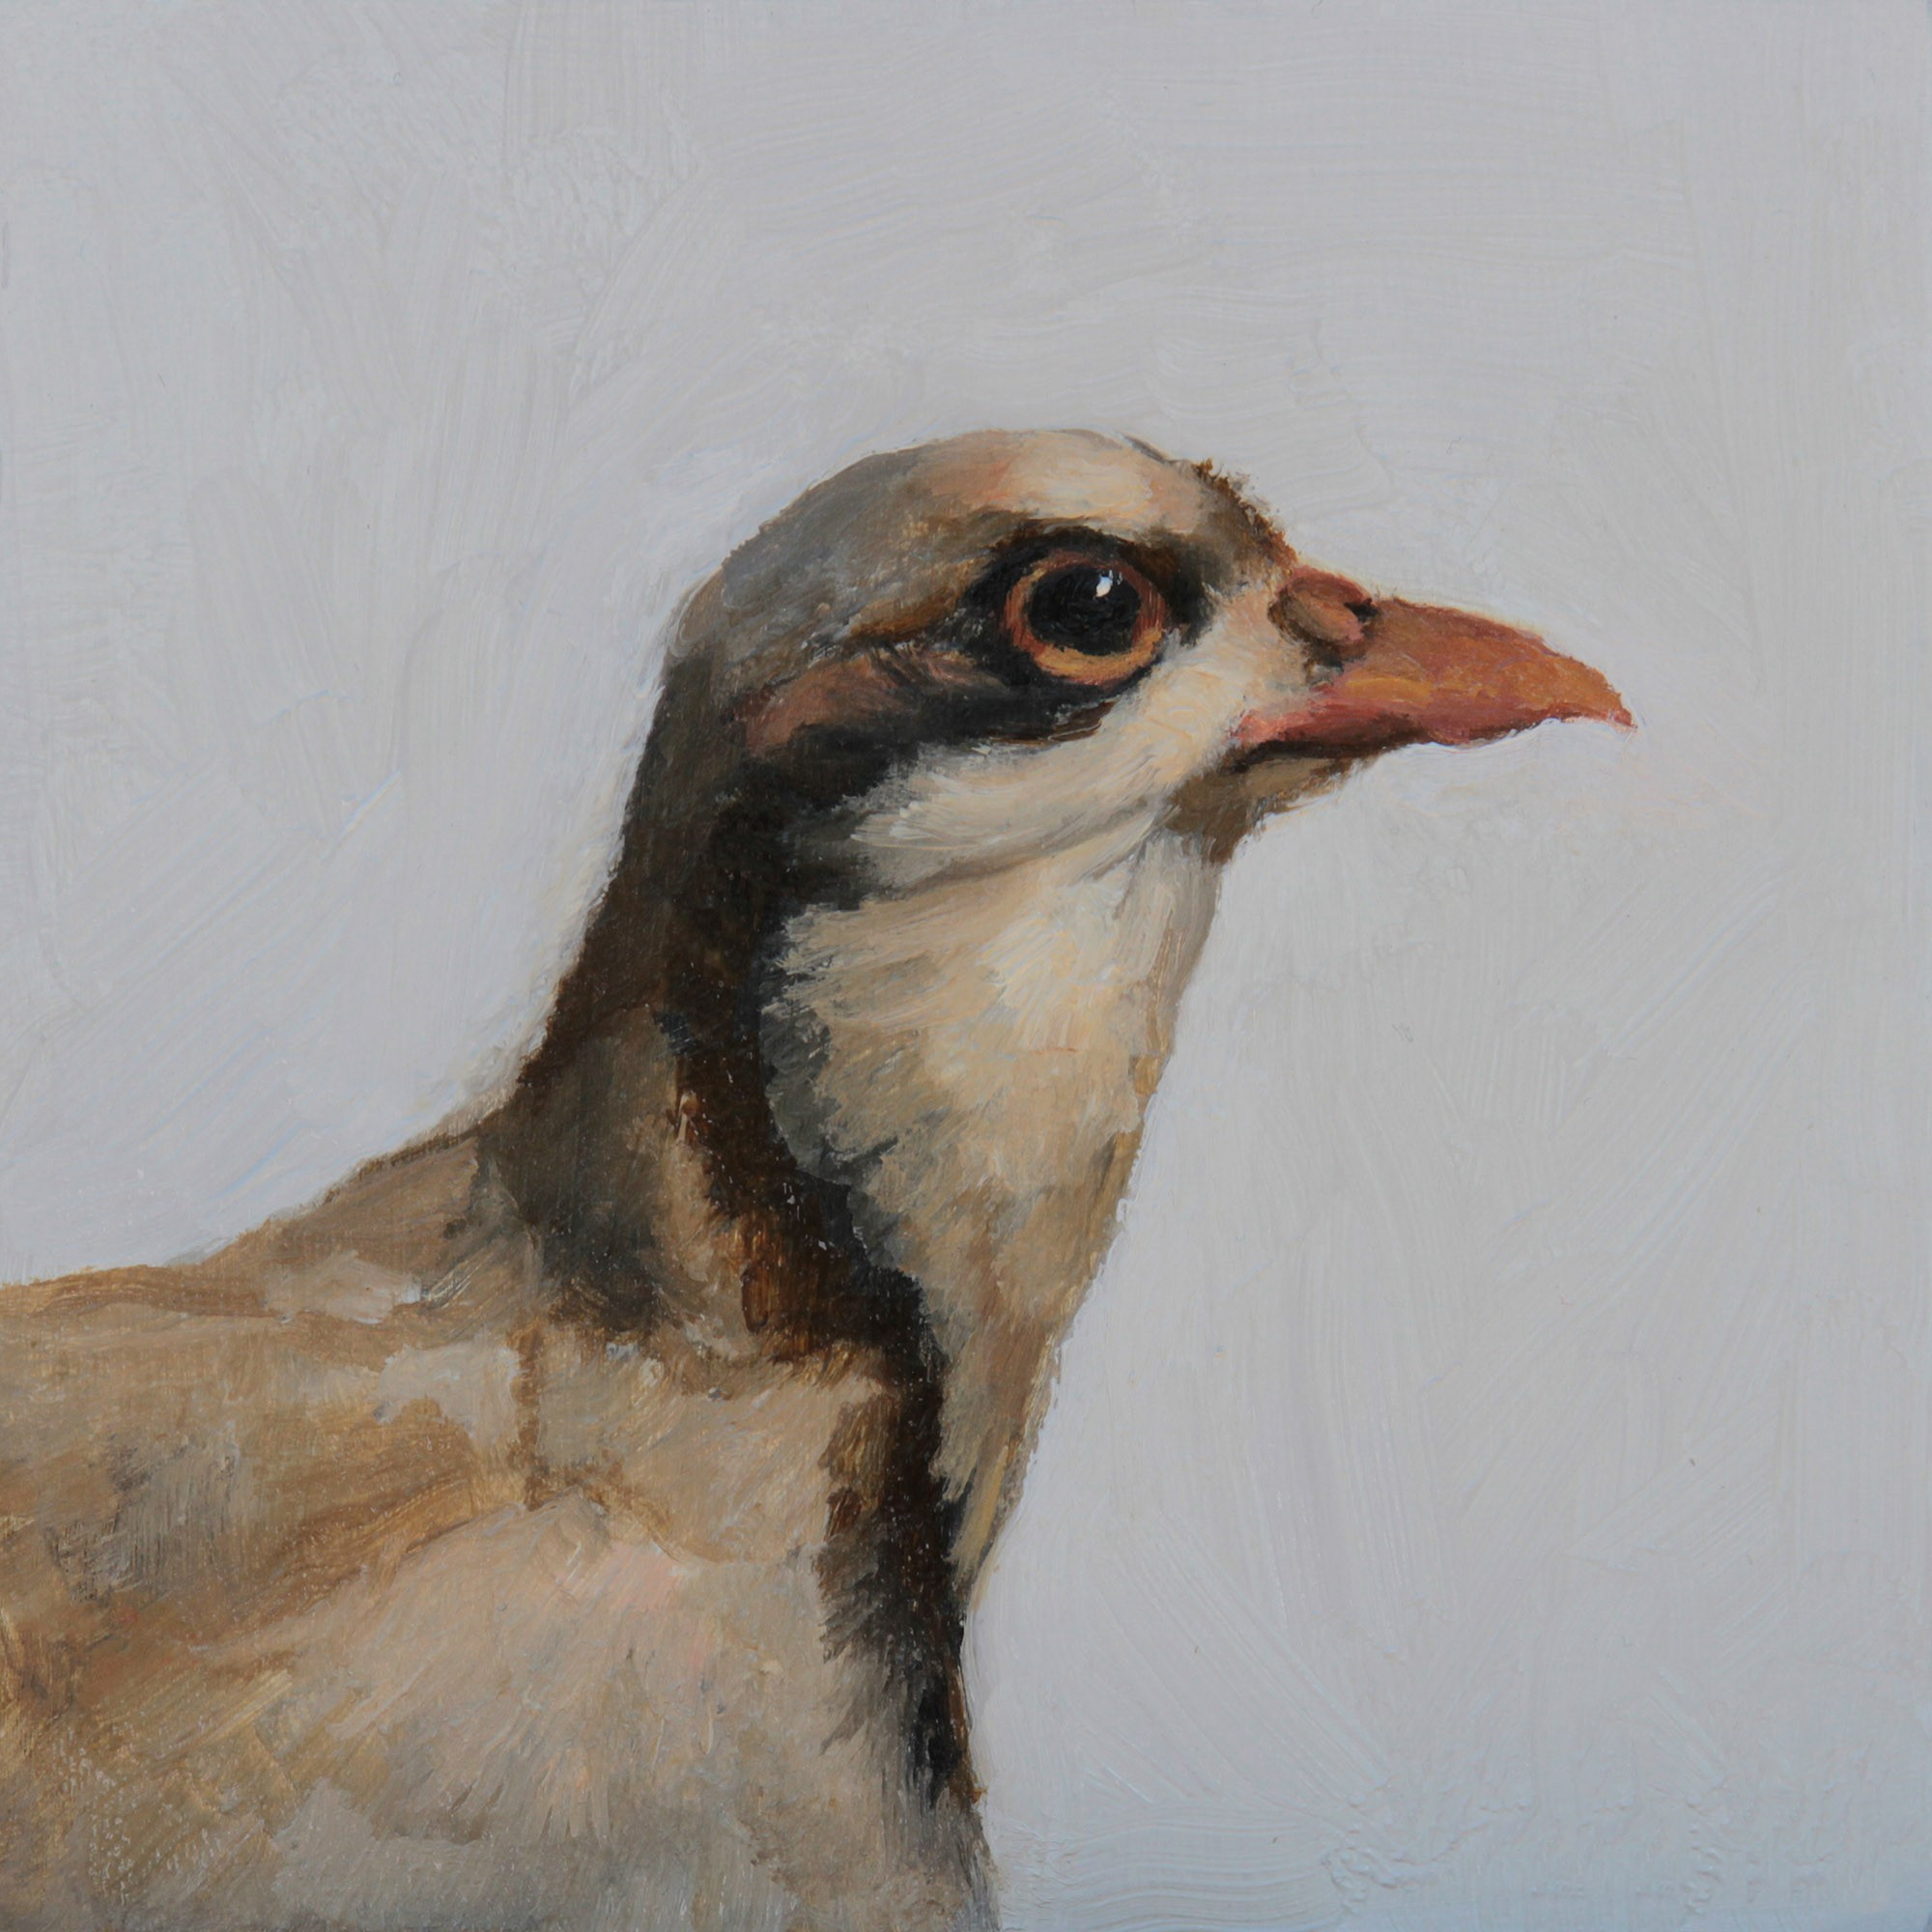 Chukar Partridge by Linda Tracey Brandon